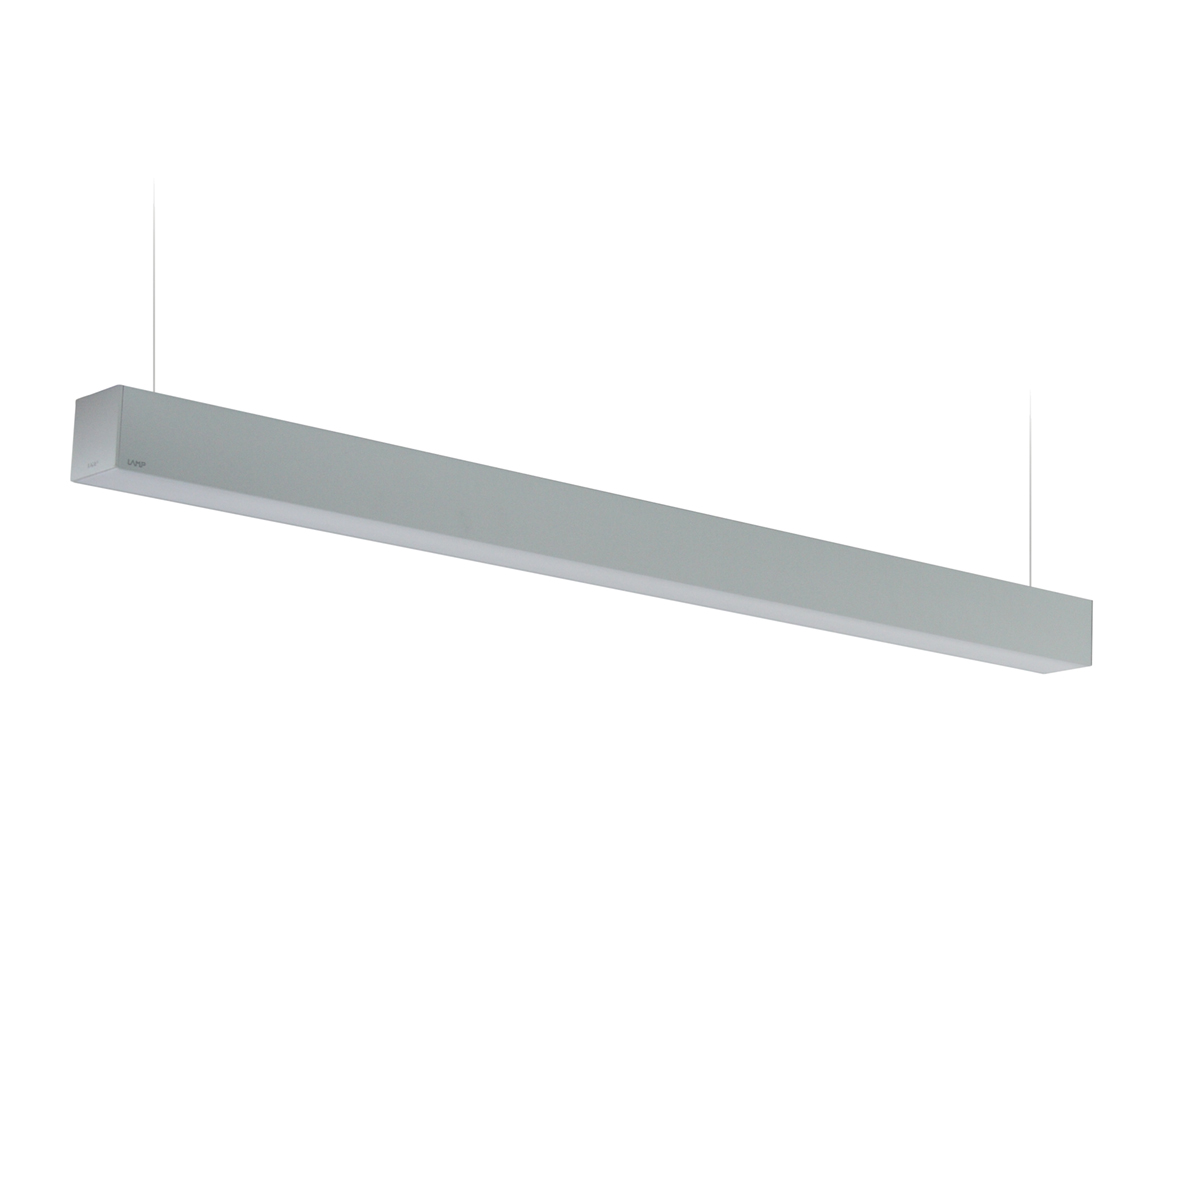 Inlite Products Lamp Fil Led Suspended Fil Led Profile System Suspended